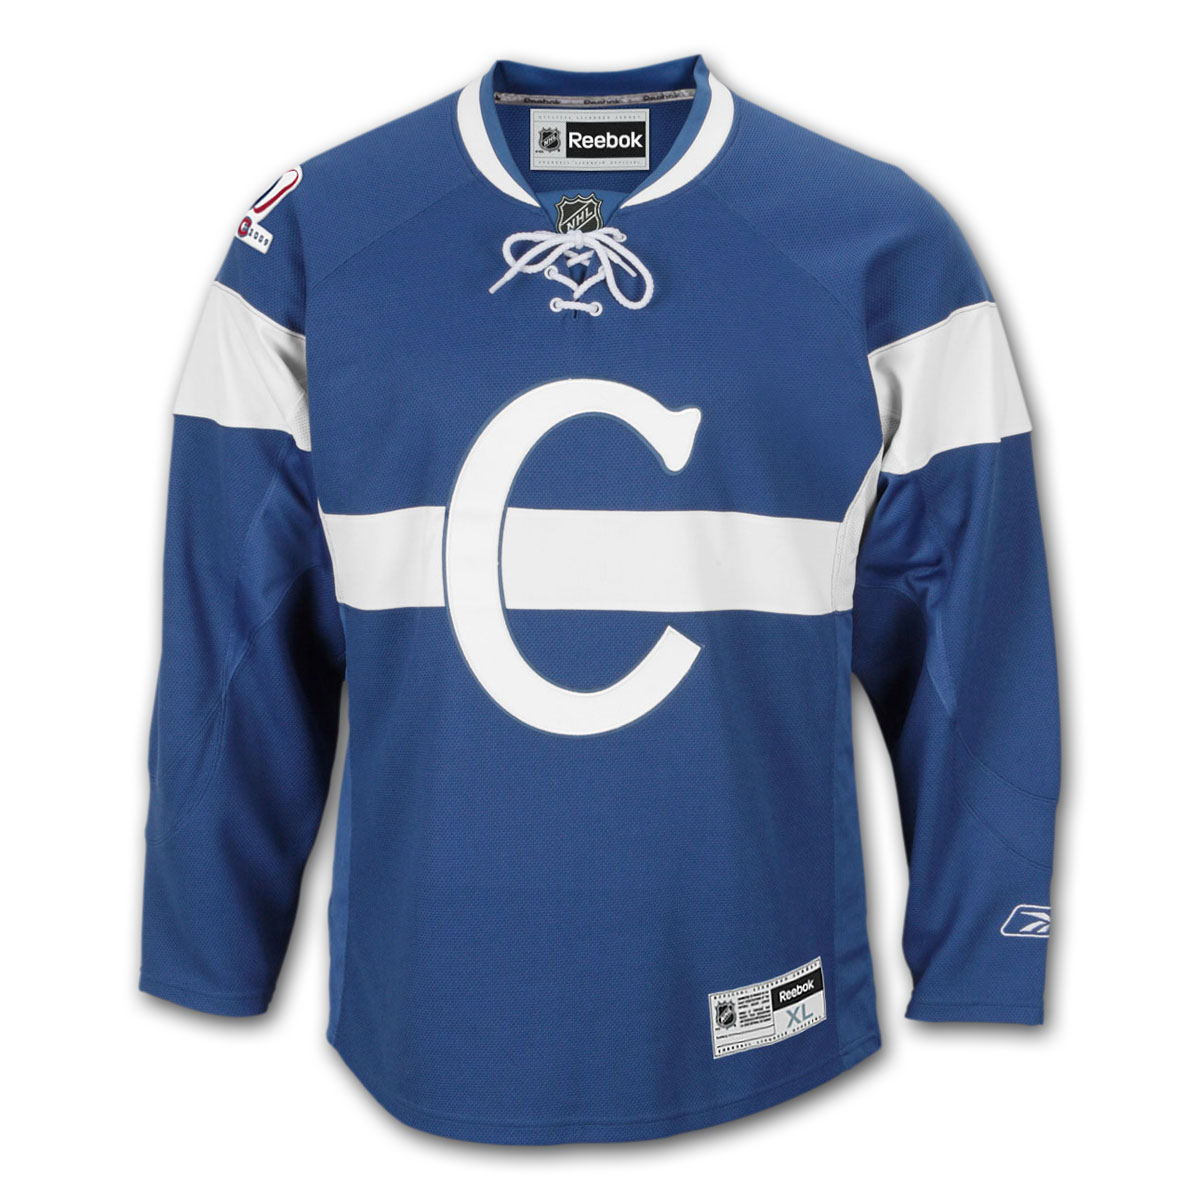 Is icejerseys.com legit? : hockeyjerseys